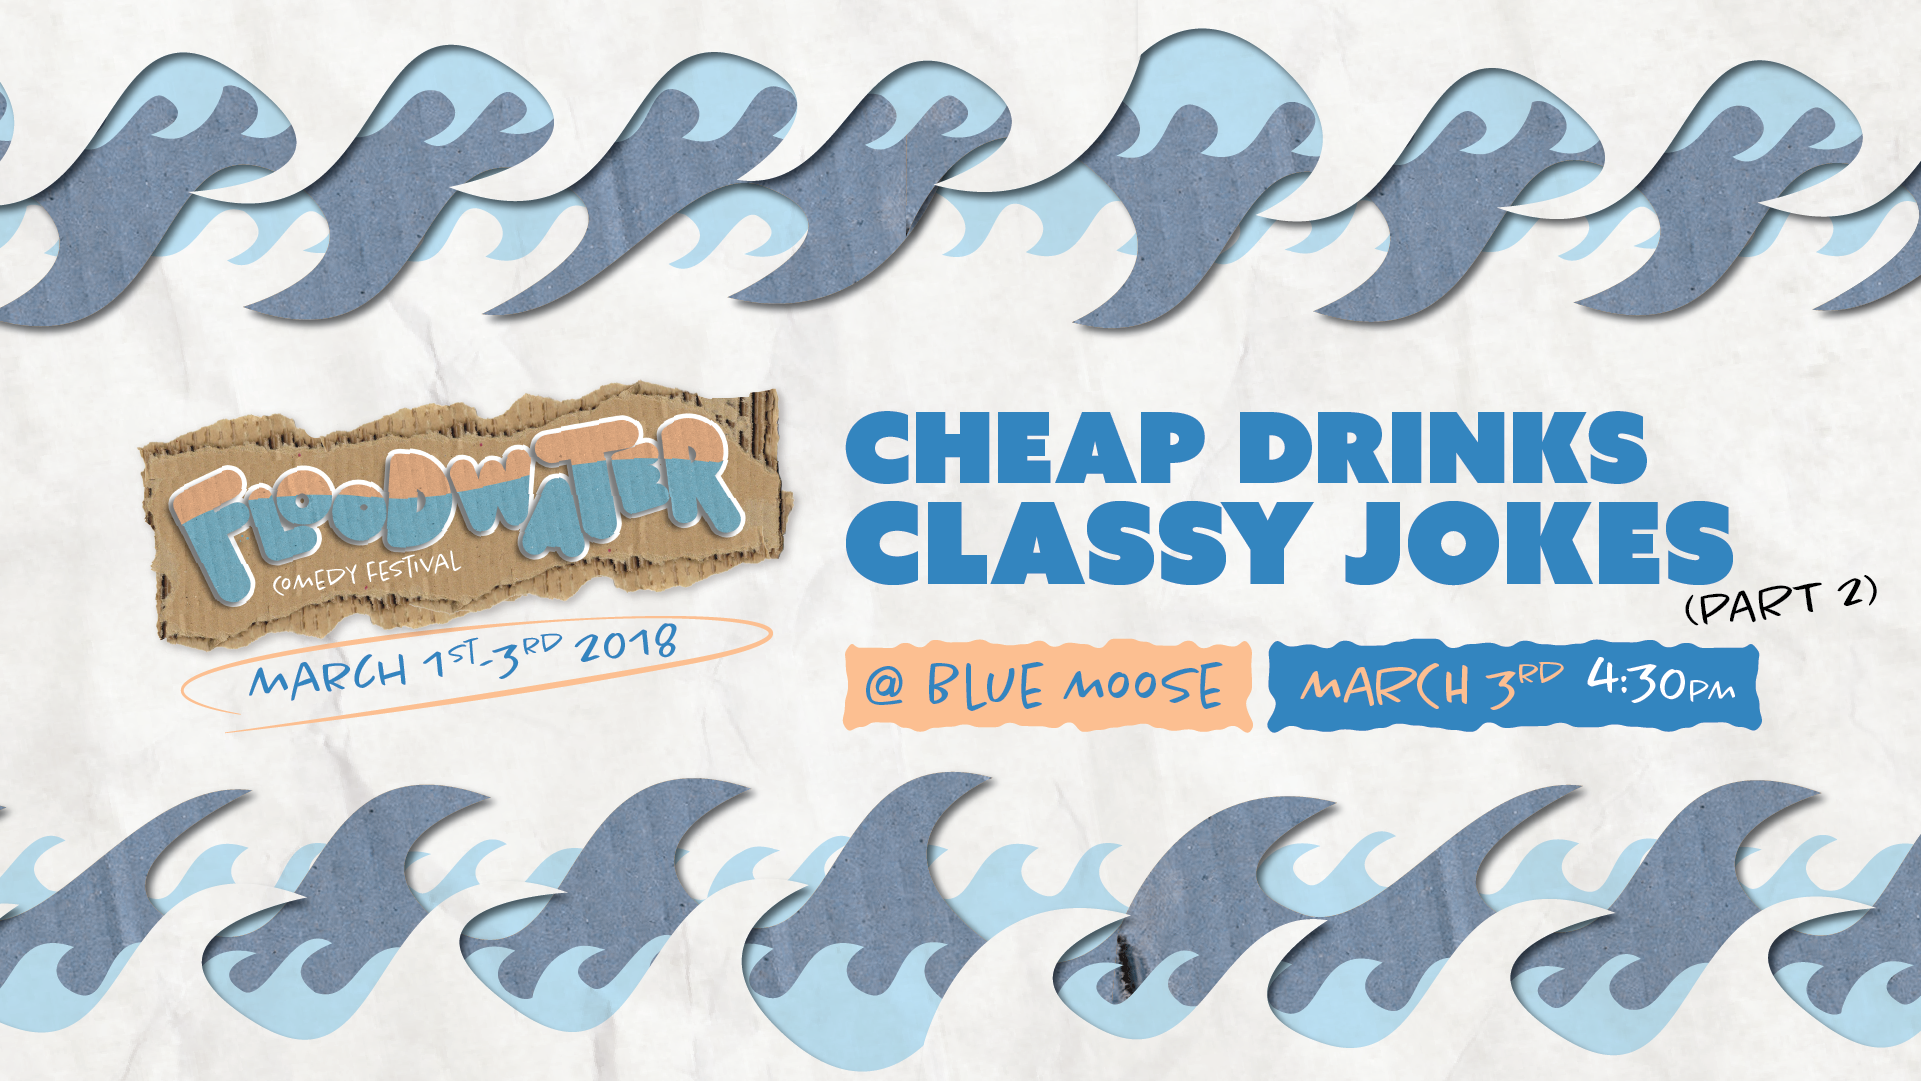 cheapdrinks2.png